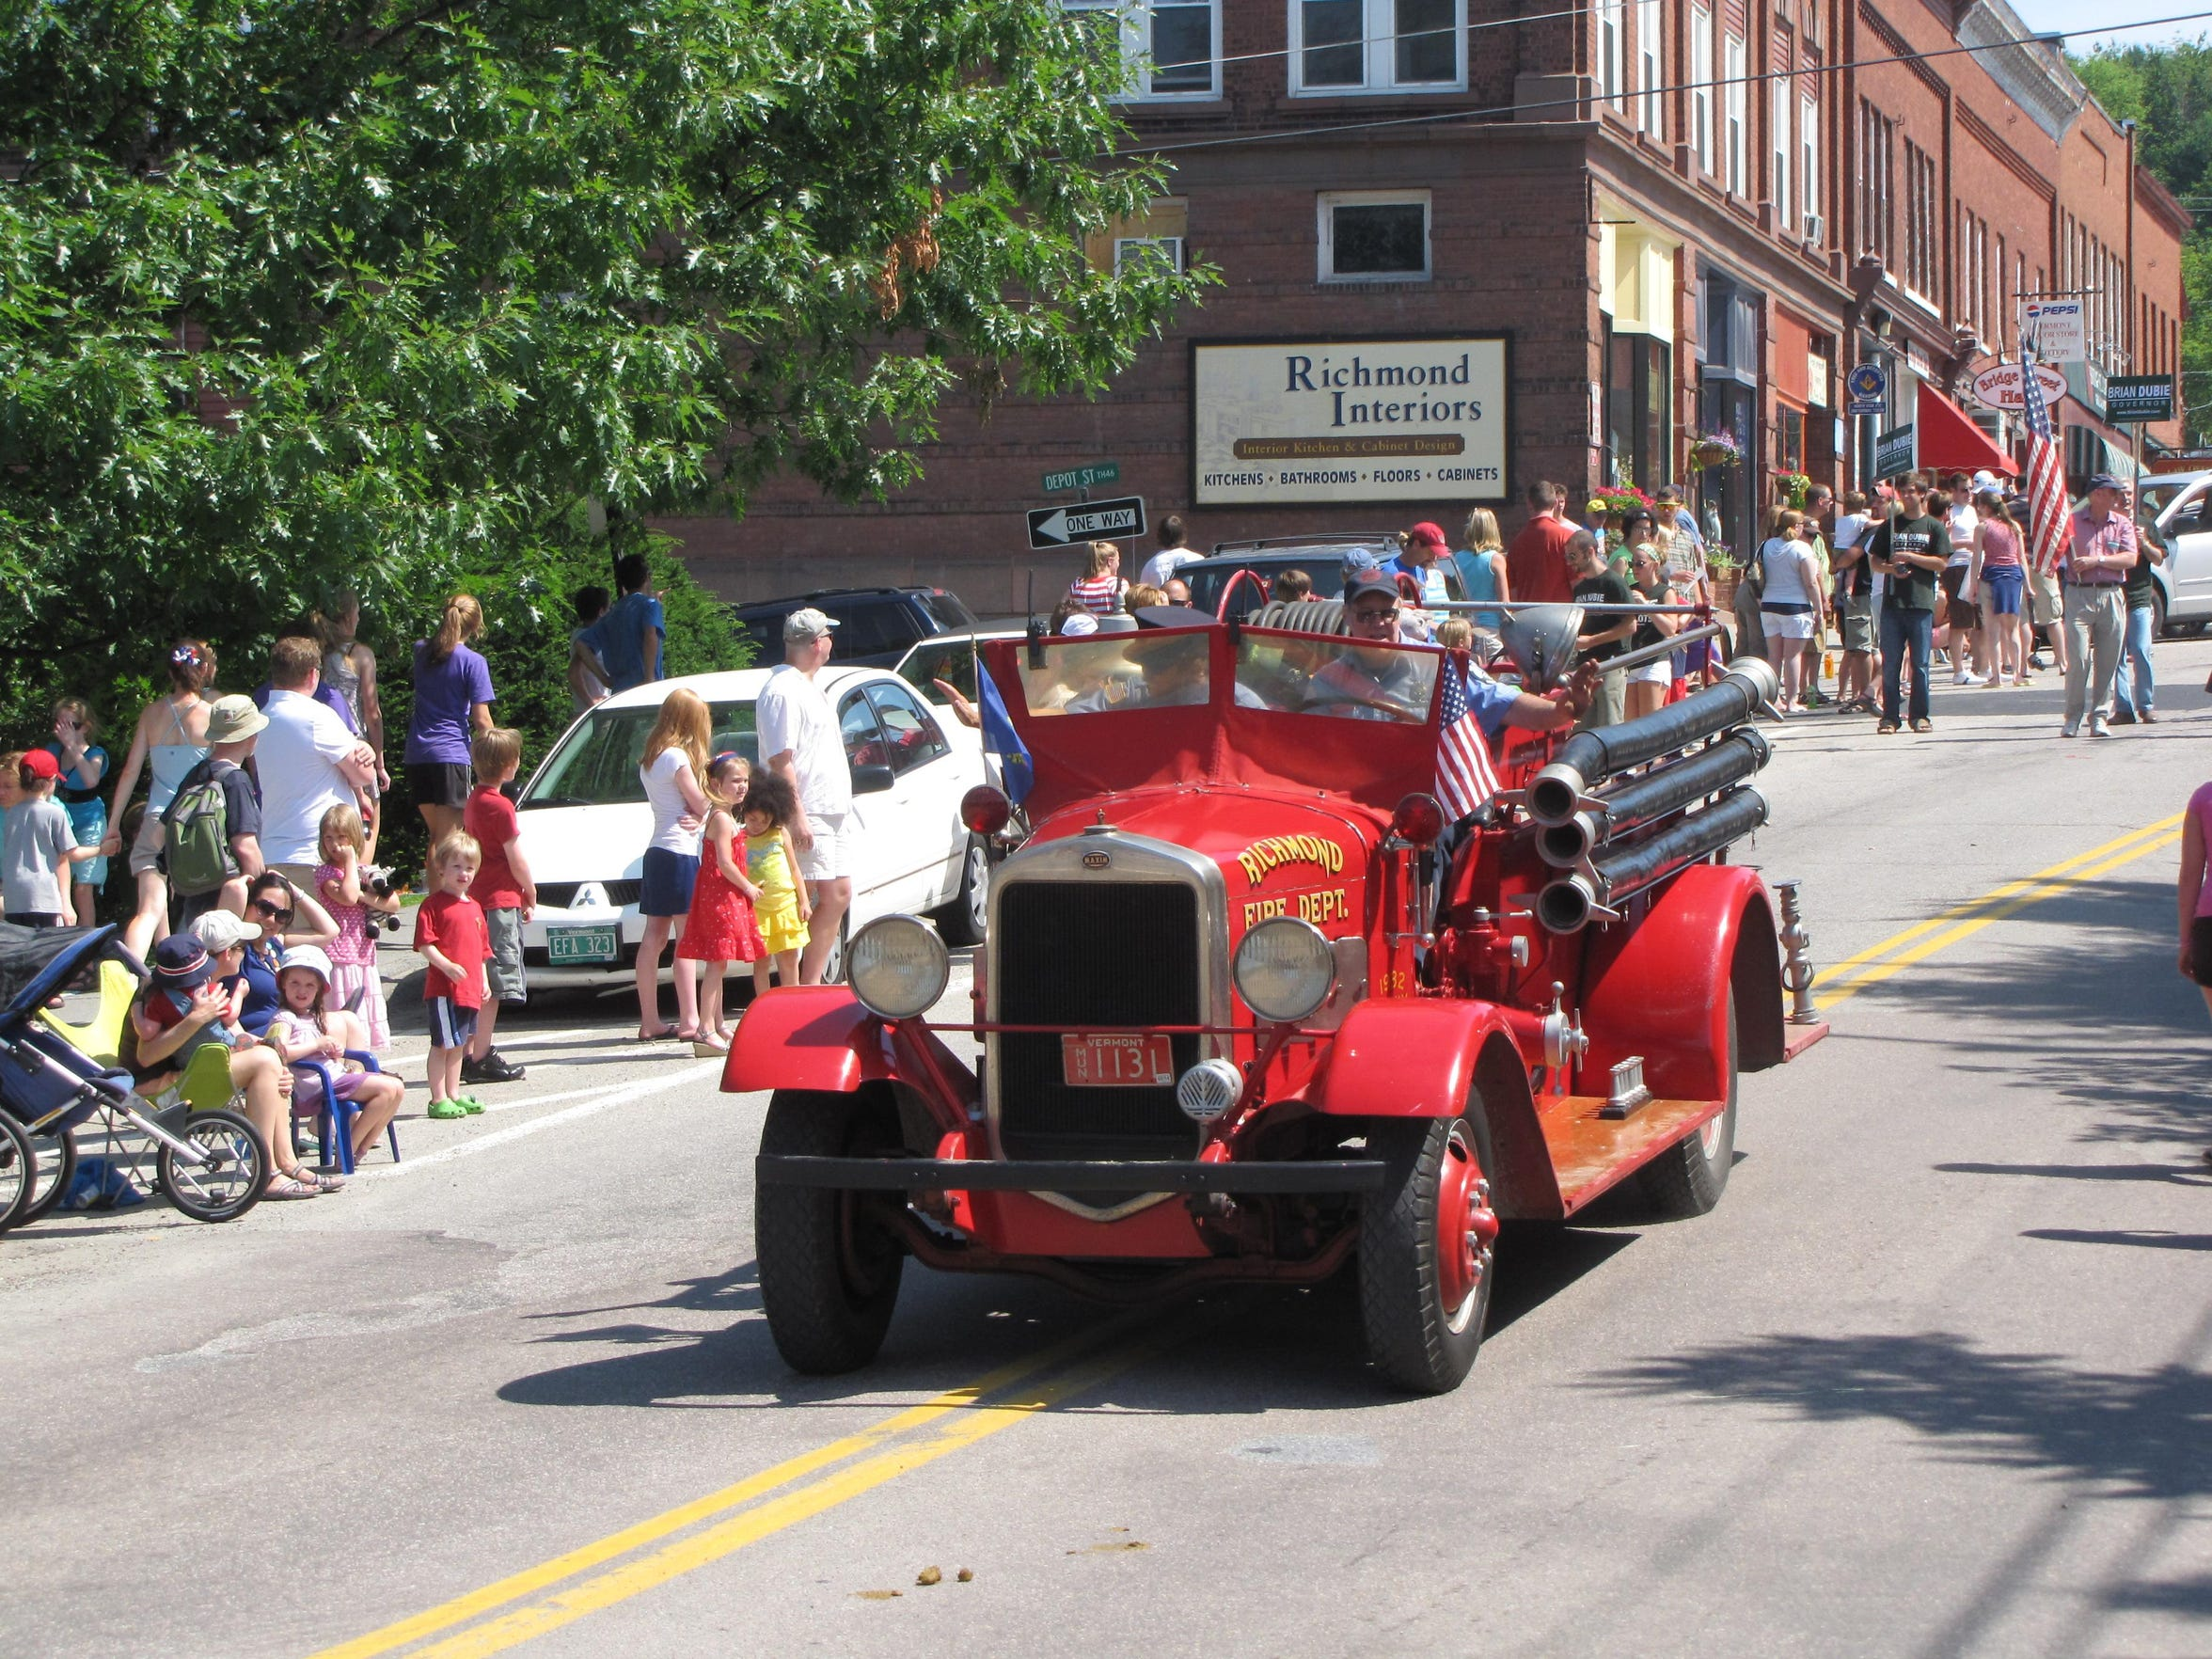 Richmond's first fire truck, a 1932 Maxim, in the 2010 Fourth of July parade.